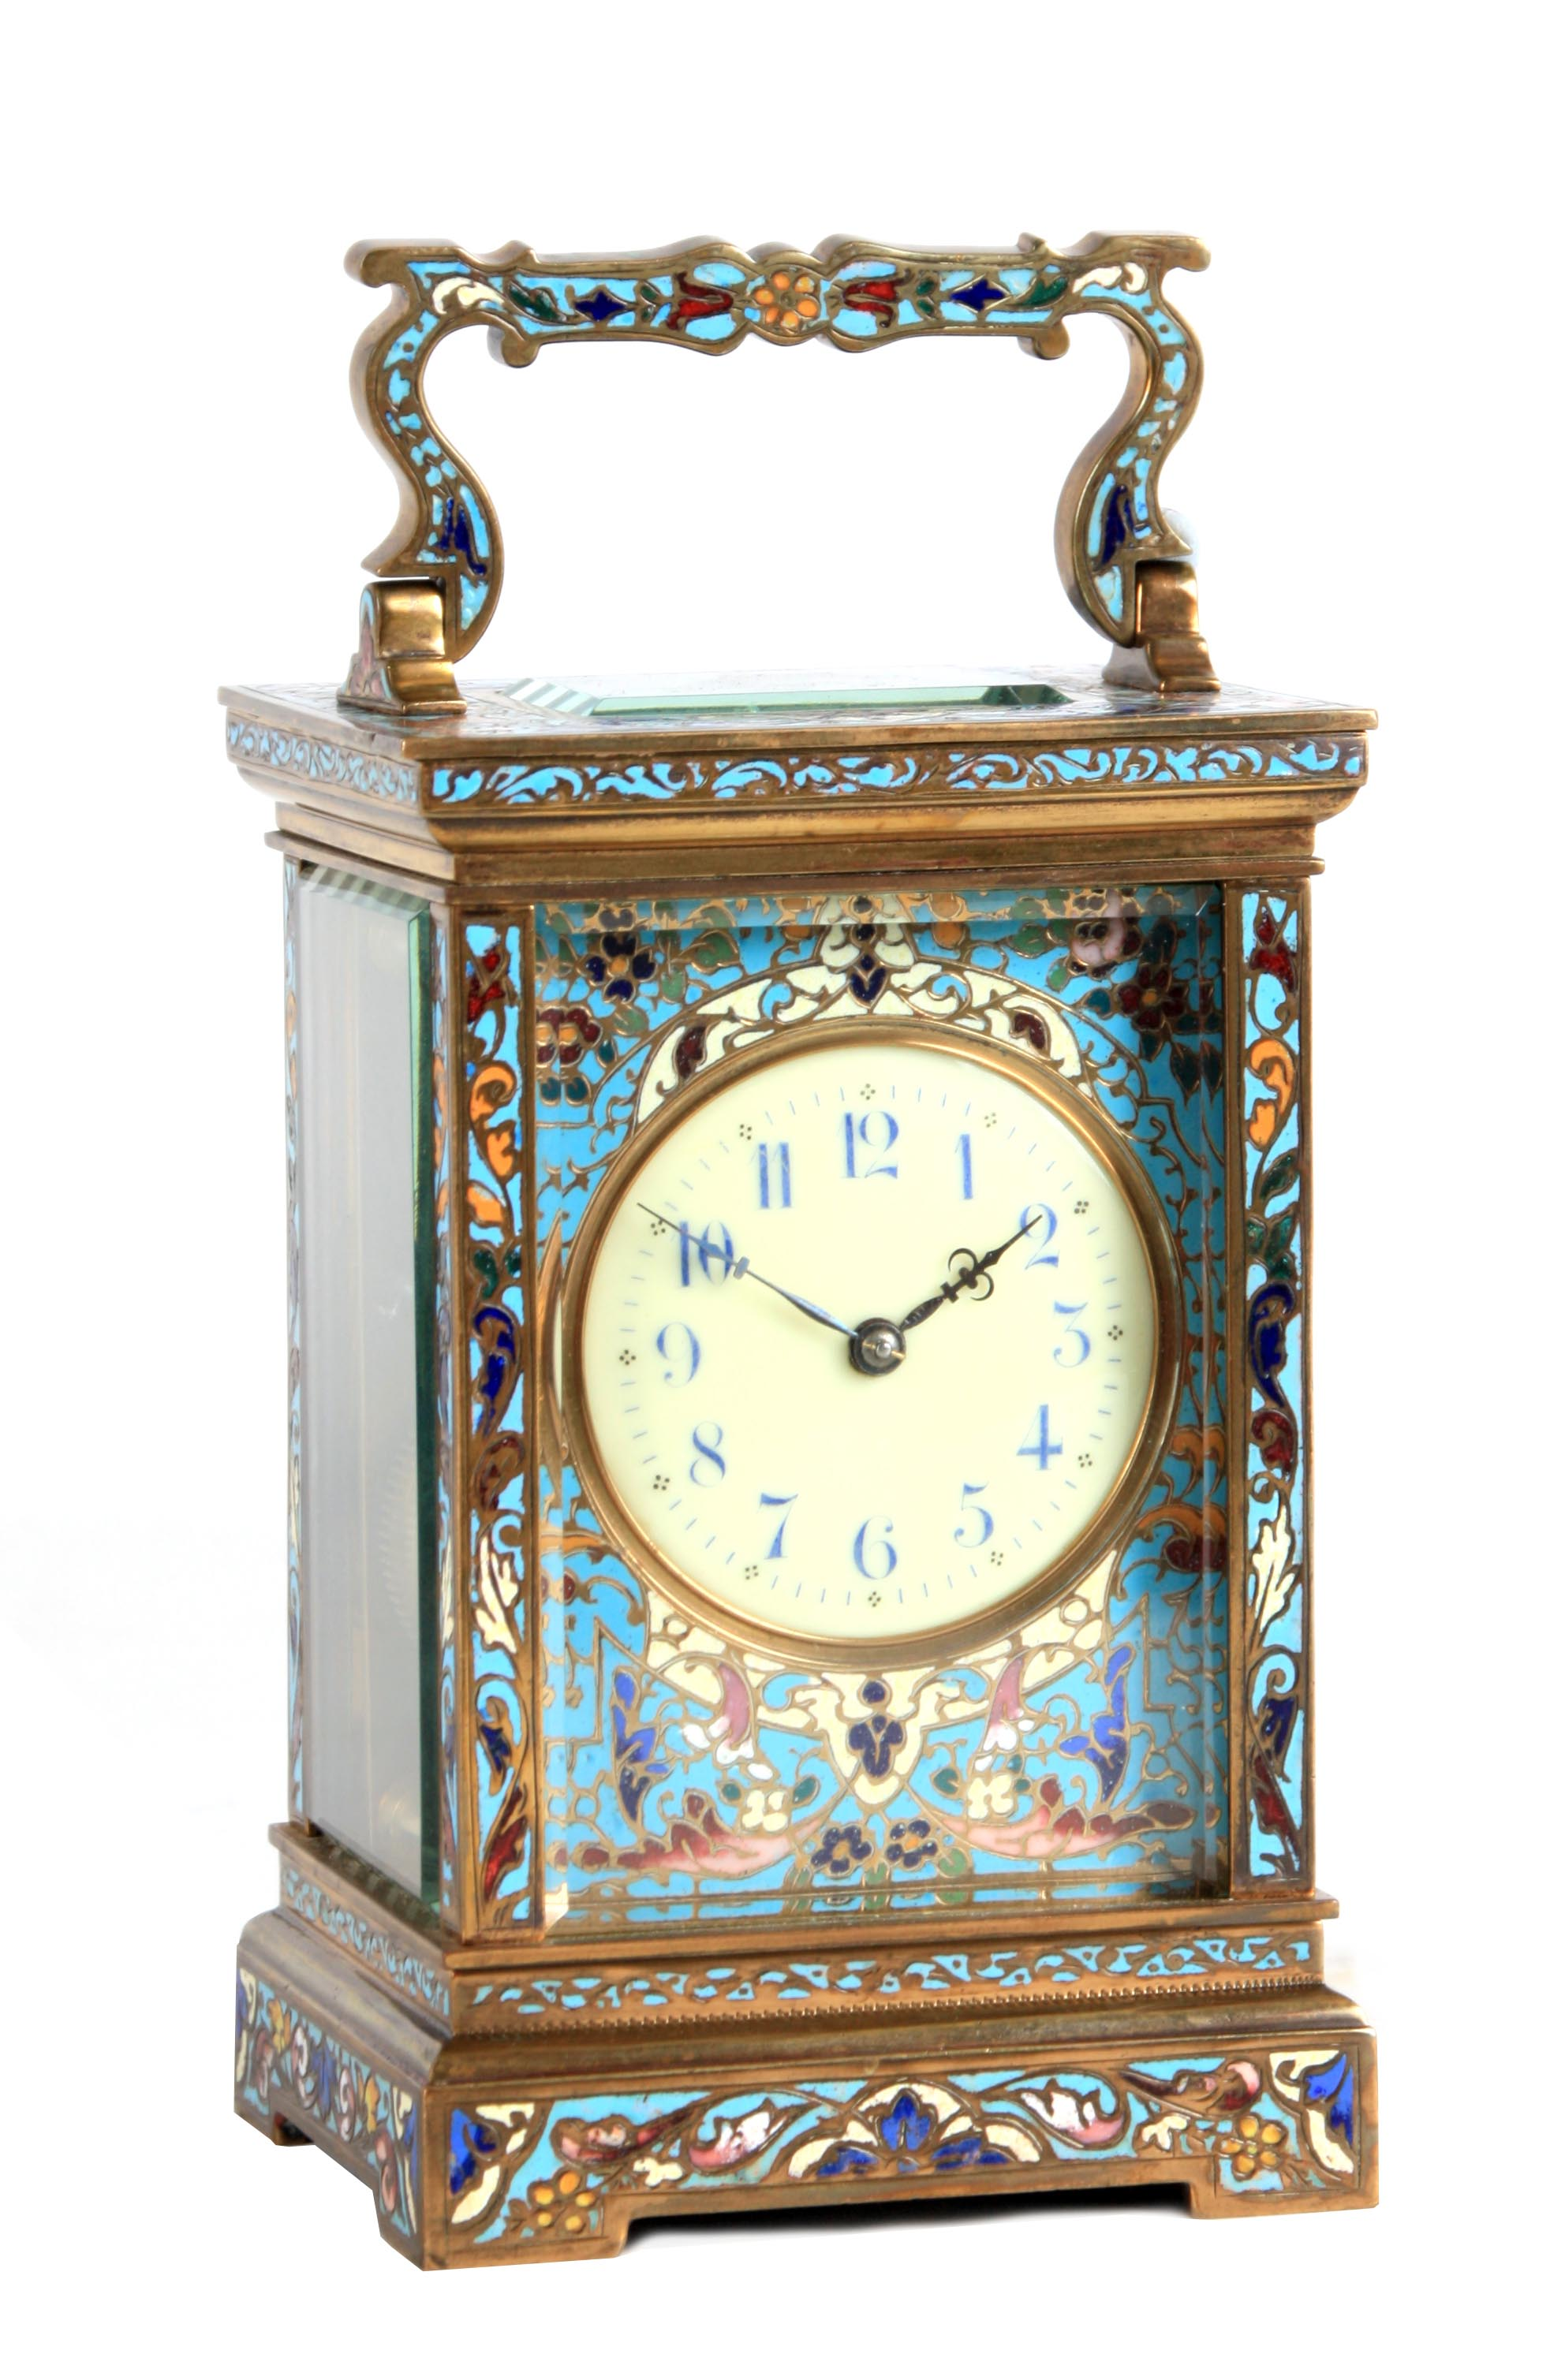 A LATE 19TH CENTURY FRENCH CHAMPLEVE ENAMEL STRIKING CARRIAGE CLOCK the case covered in champleve